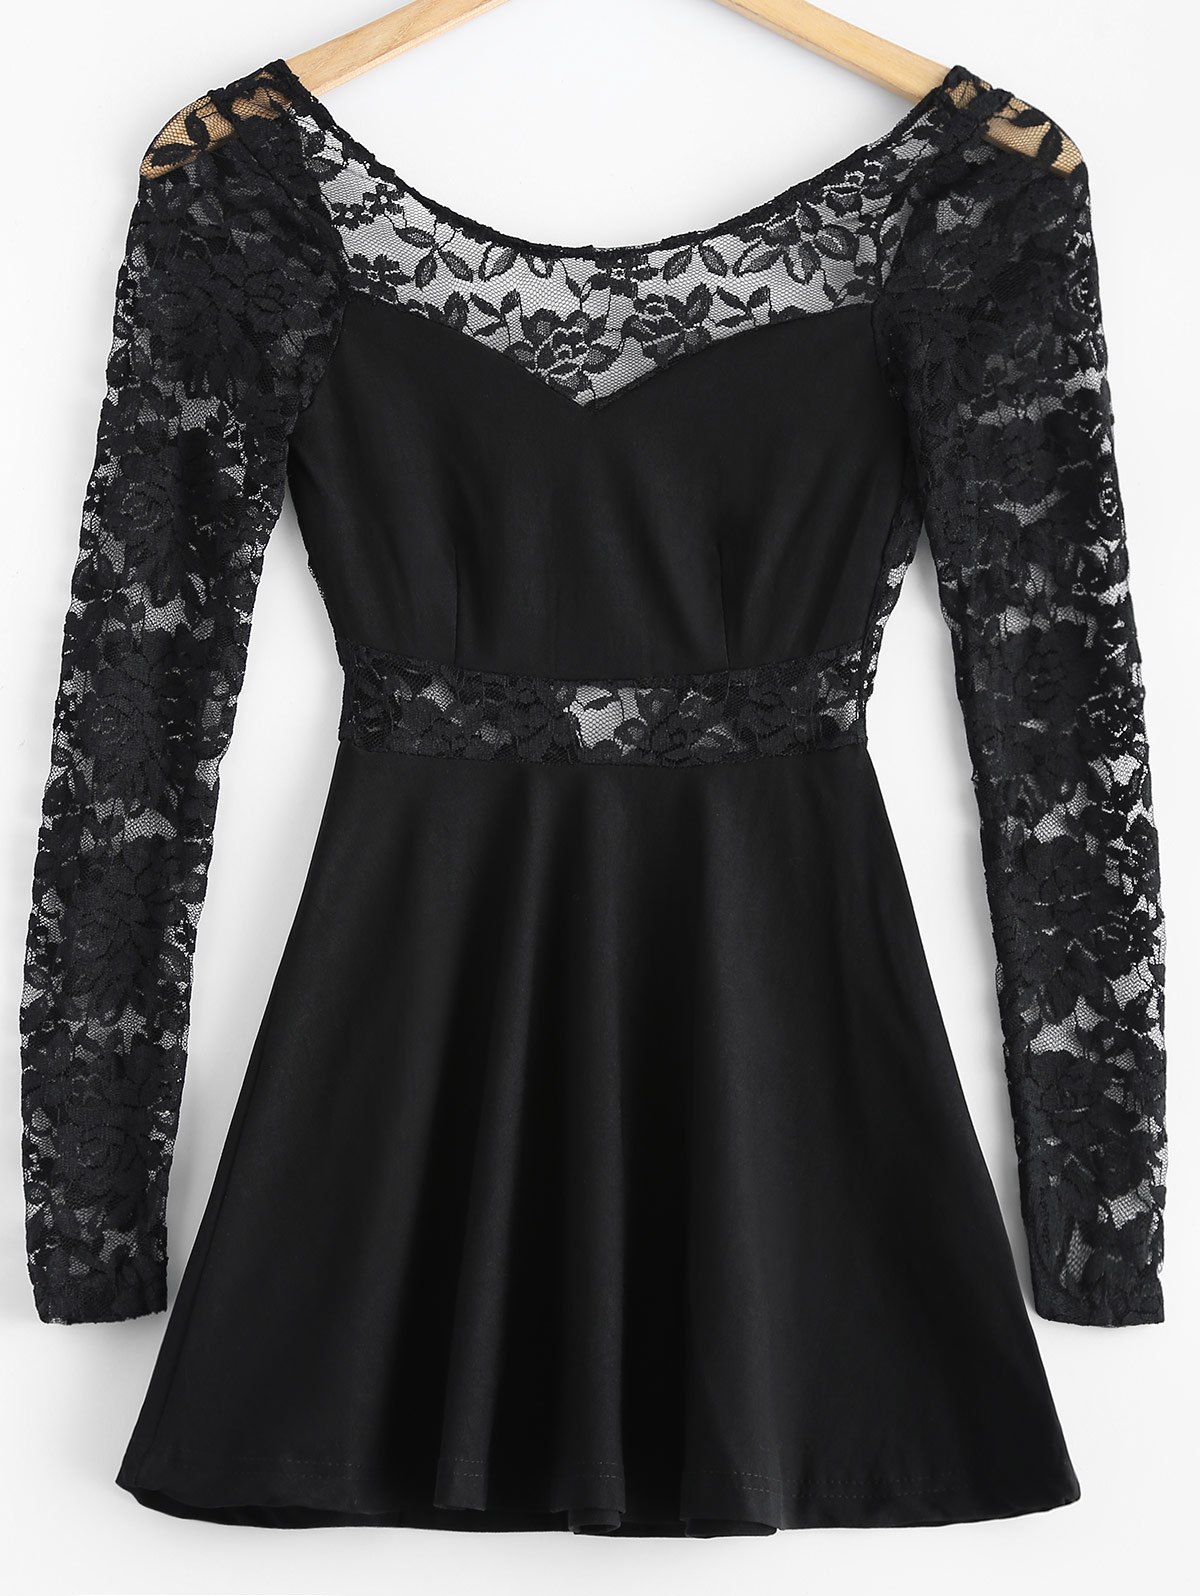 3/4 Sleeve Lace-Insert Backless Dress - BLACK L